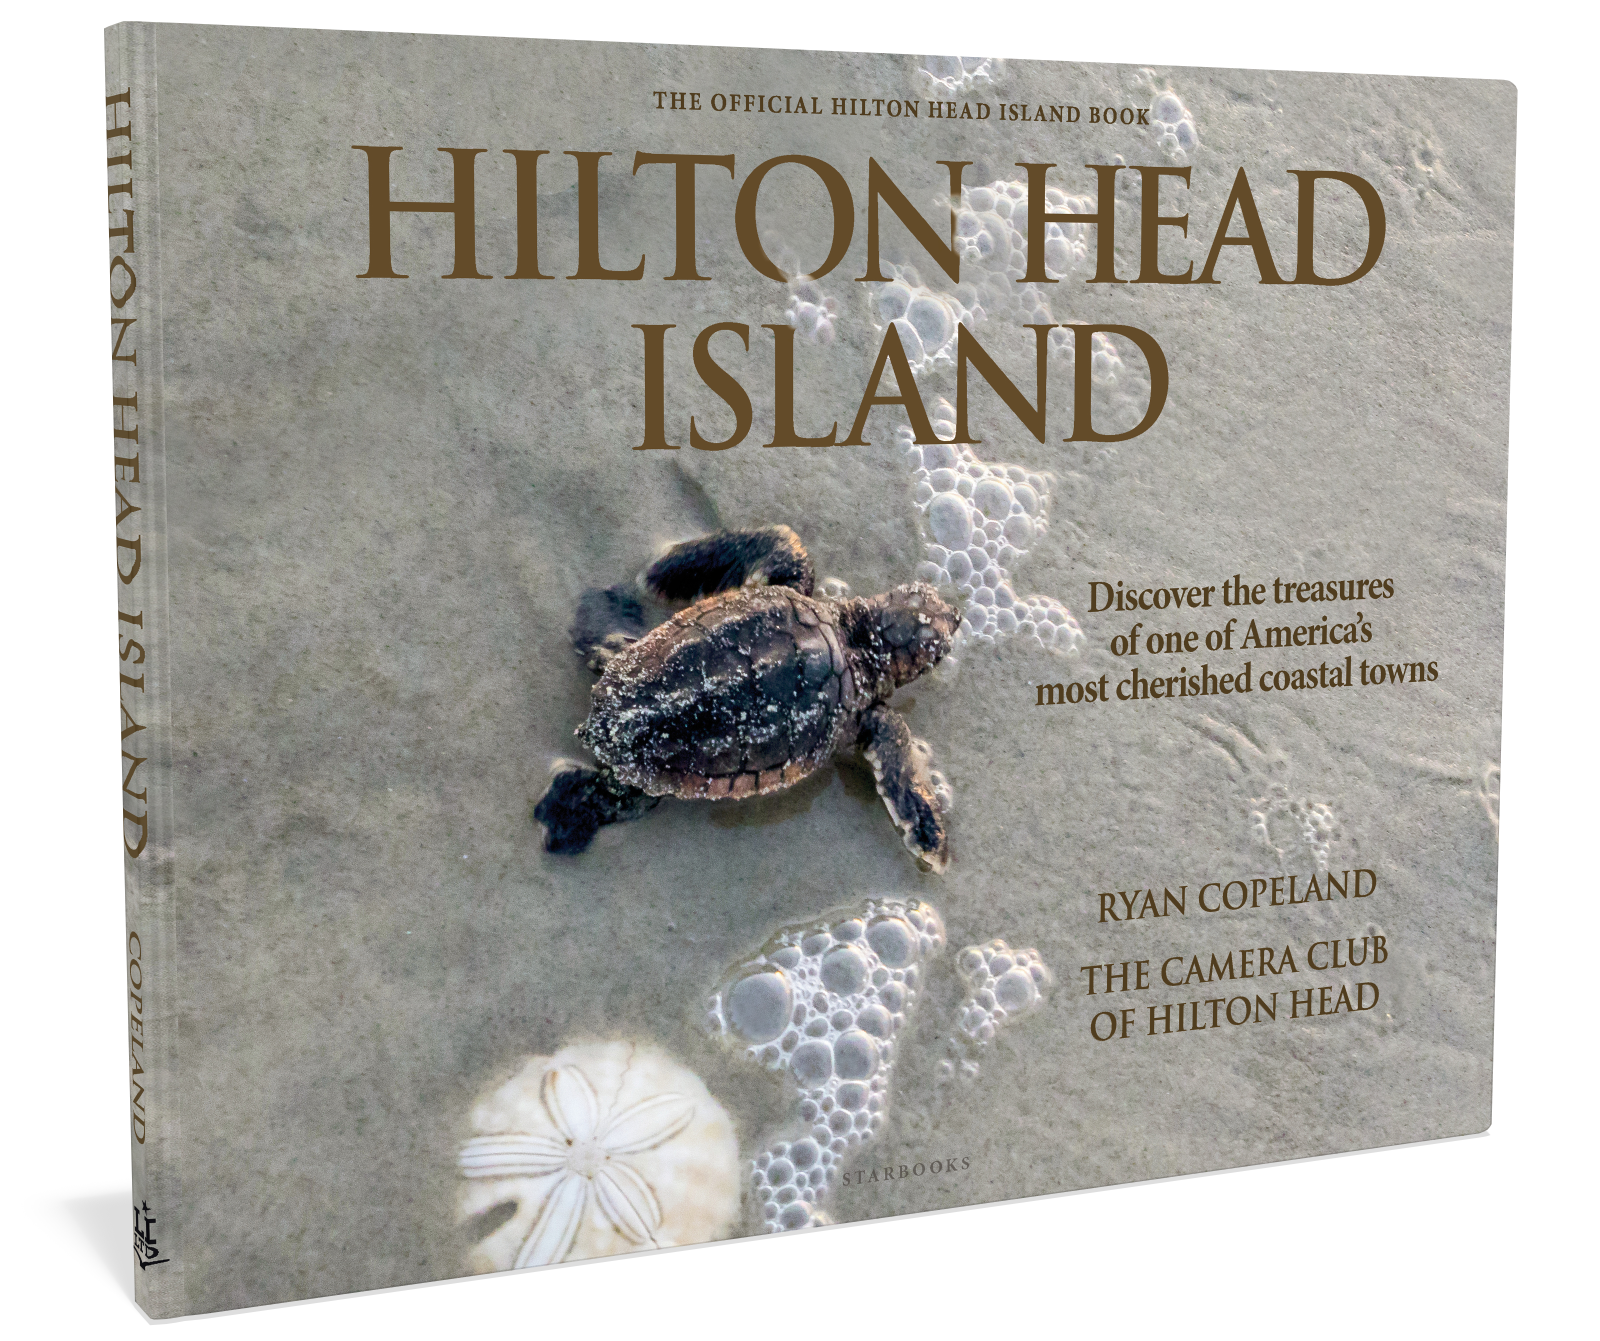 Cover: Hilton Head Island Interactive Augmented Reality Photography Book by Ryan Copeland Starbooks